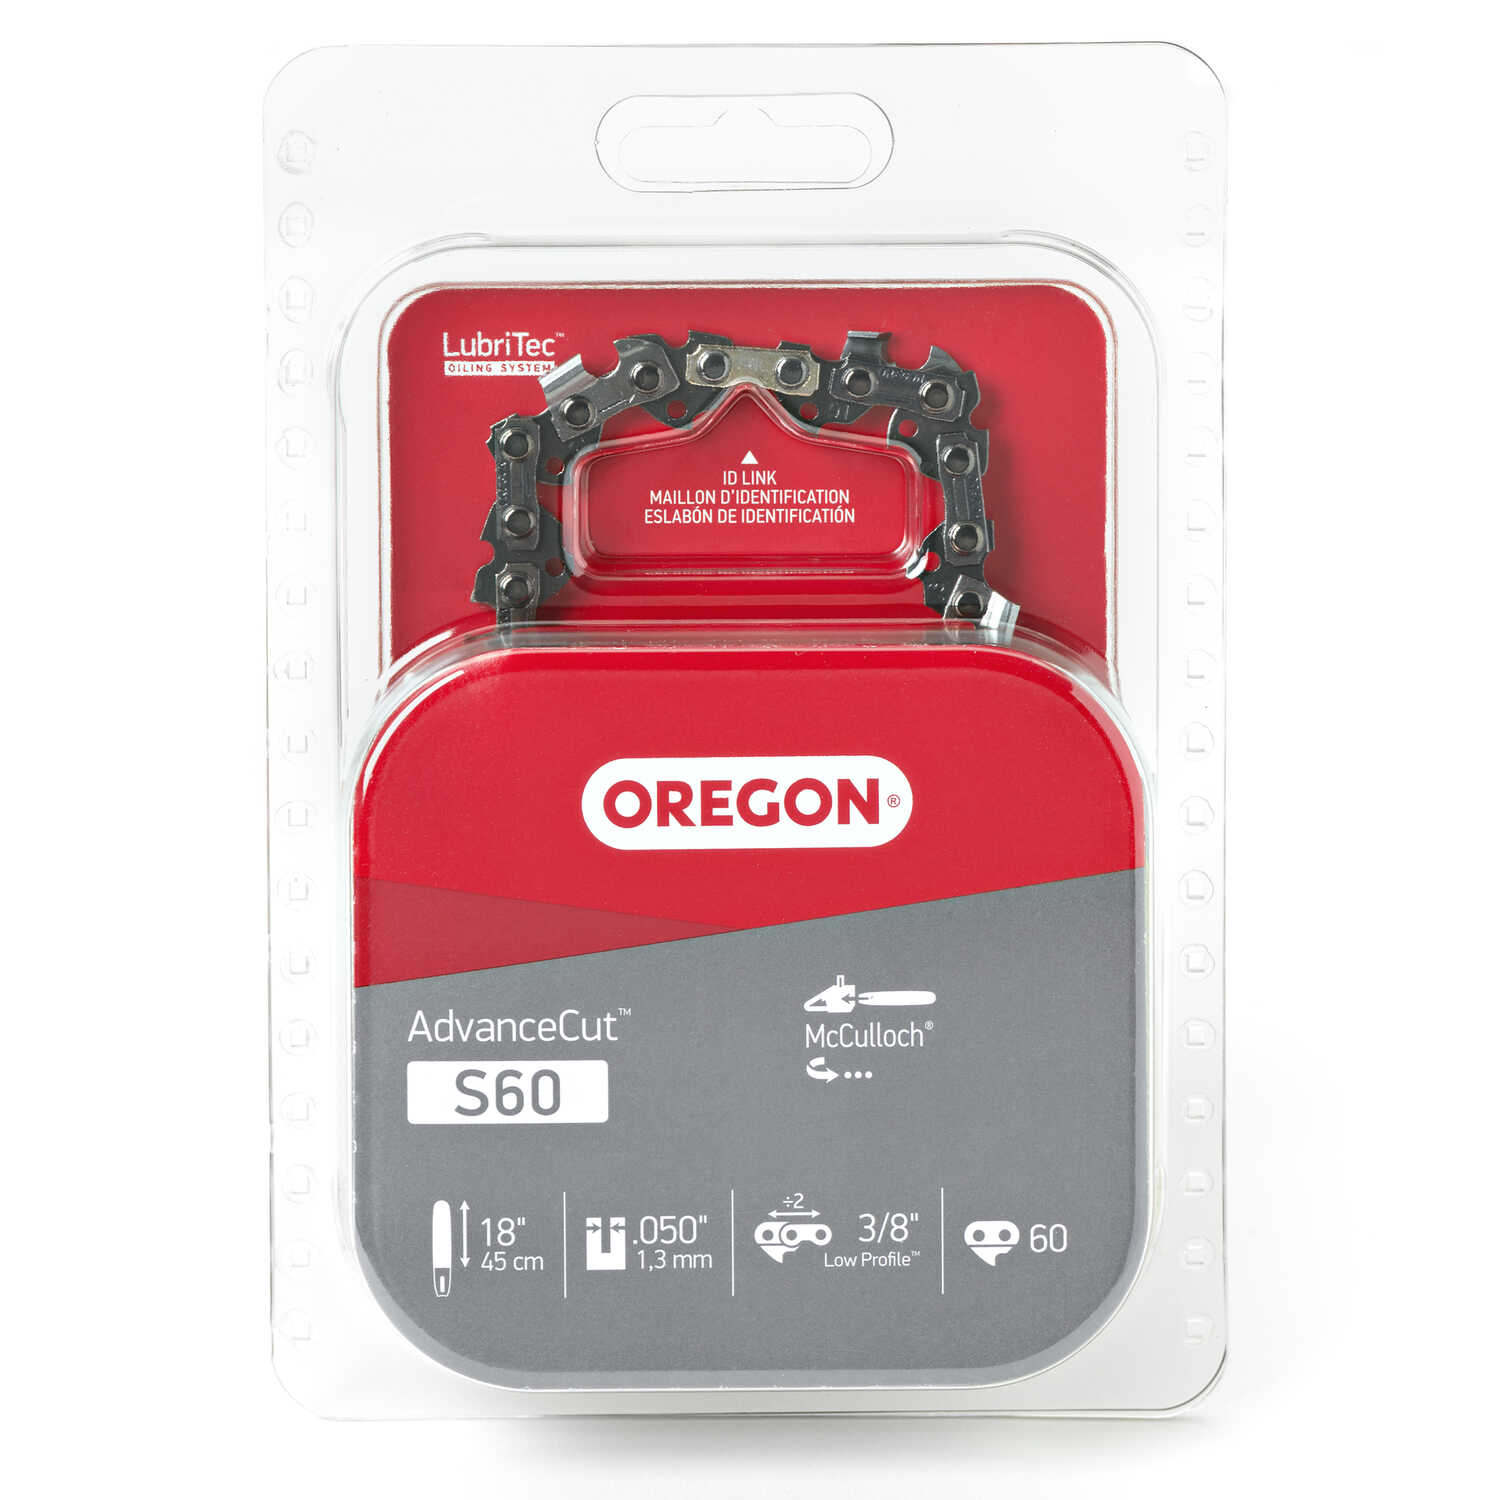 Oregon  Advance Cut  18 in. 60 links Chainsaw Chain